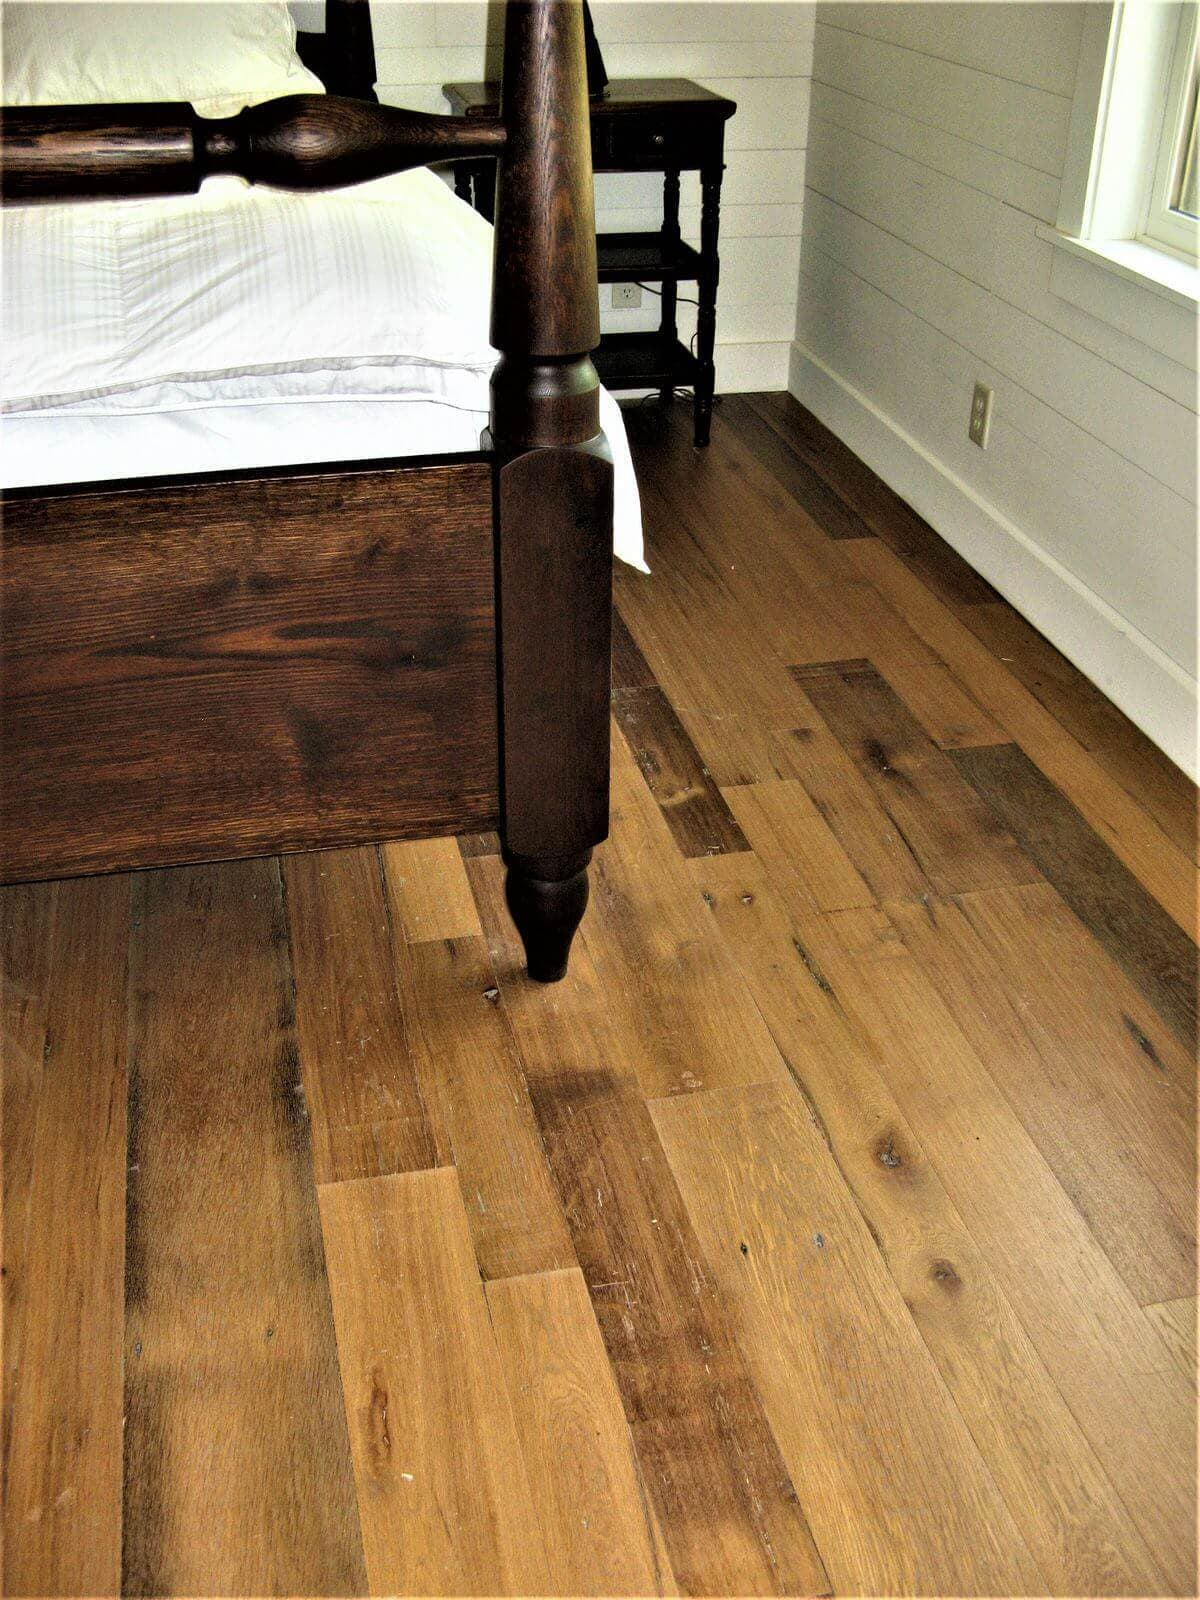 Classic wood flooring in bedroom.